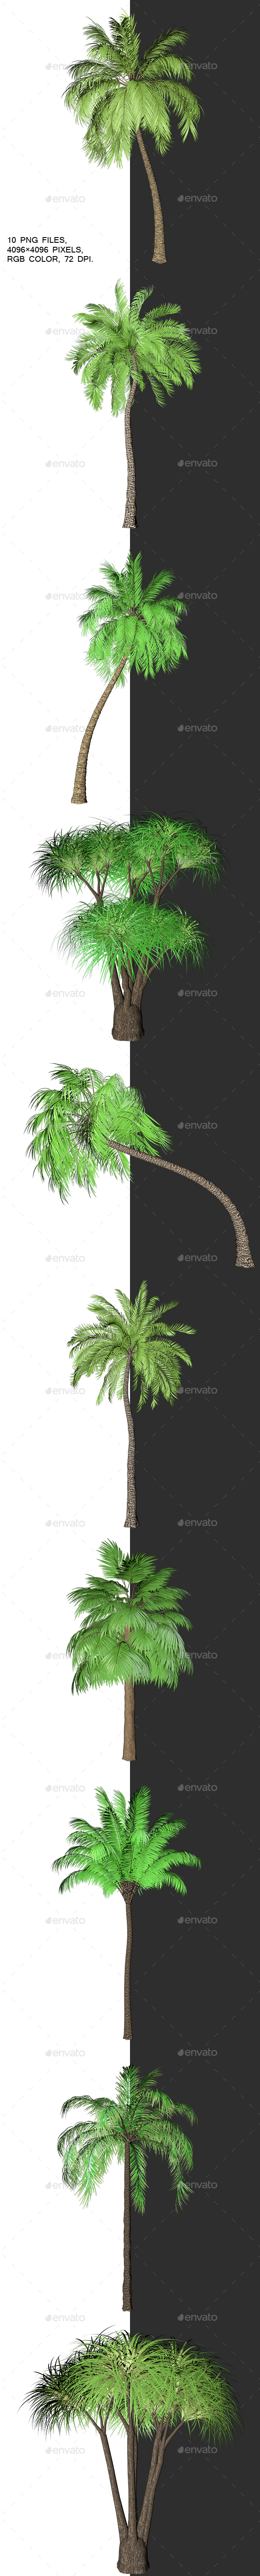 Packing Palm Trees With Alpha Channel - 3D Renders Graphics